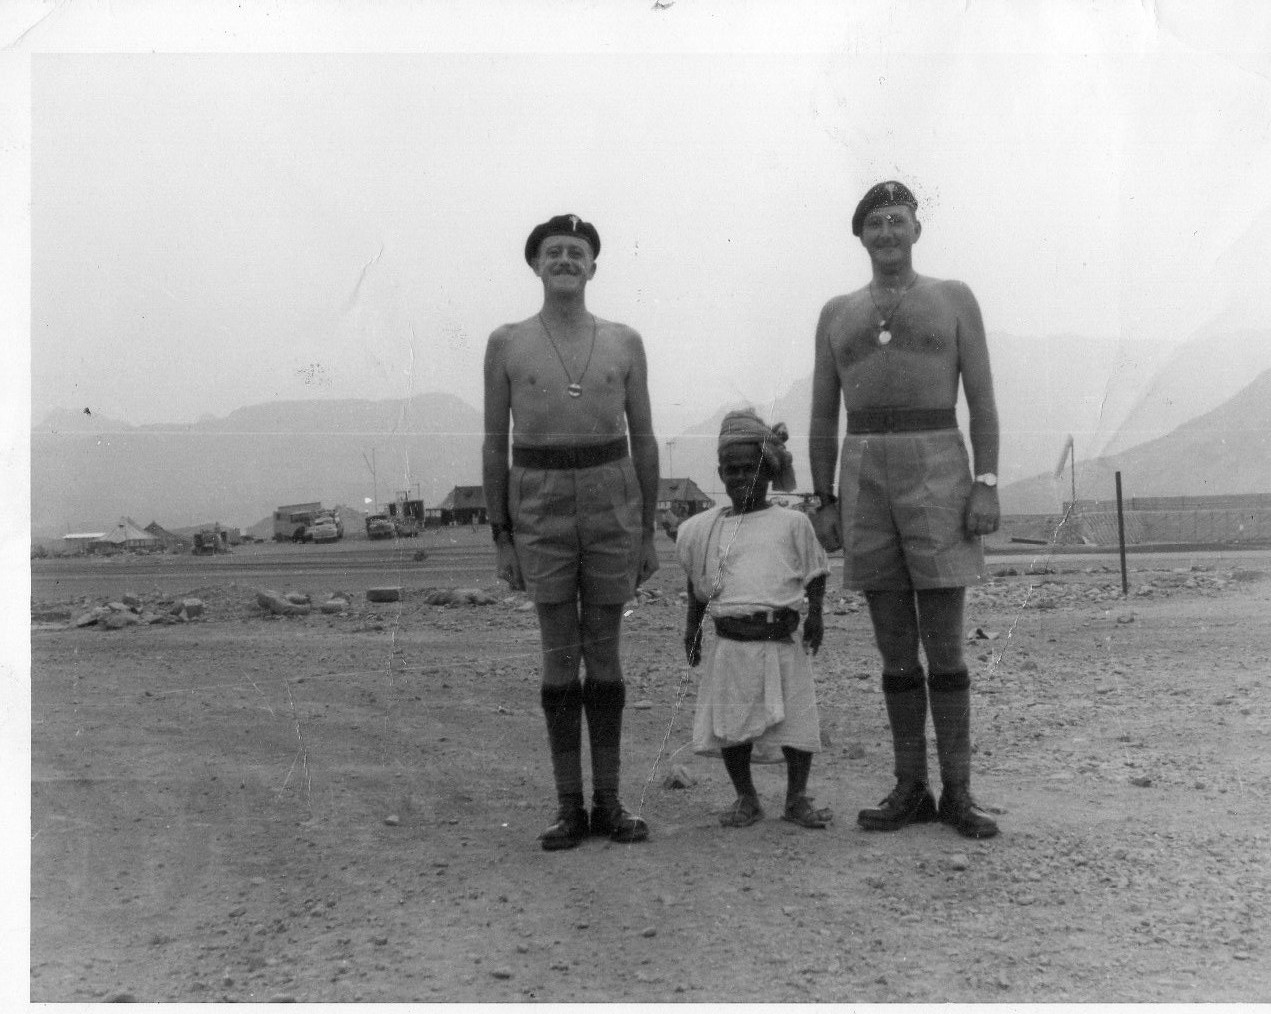 David Jones, Jimmy James and friend in Aden